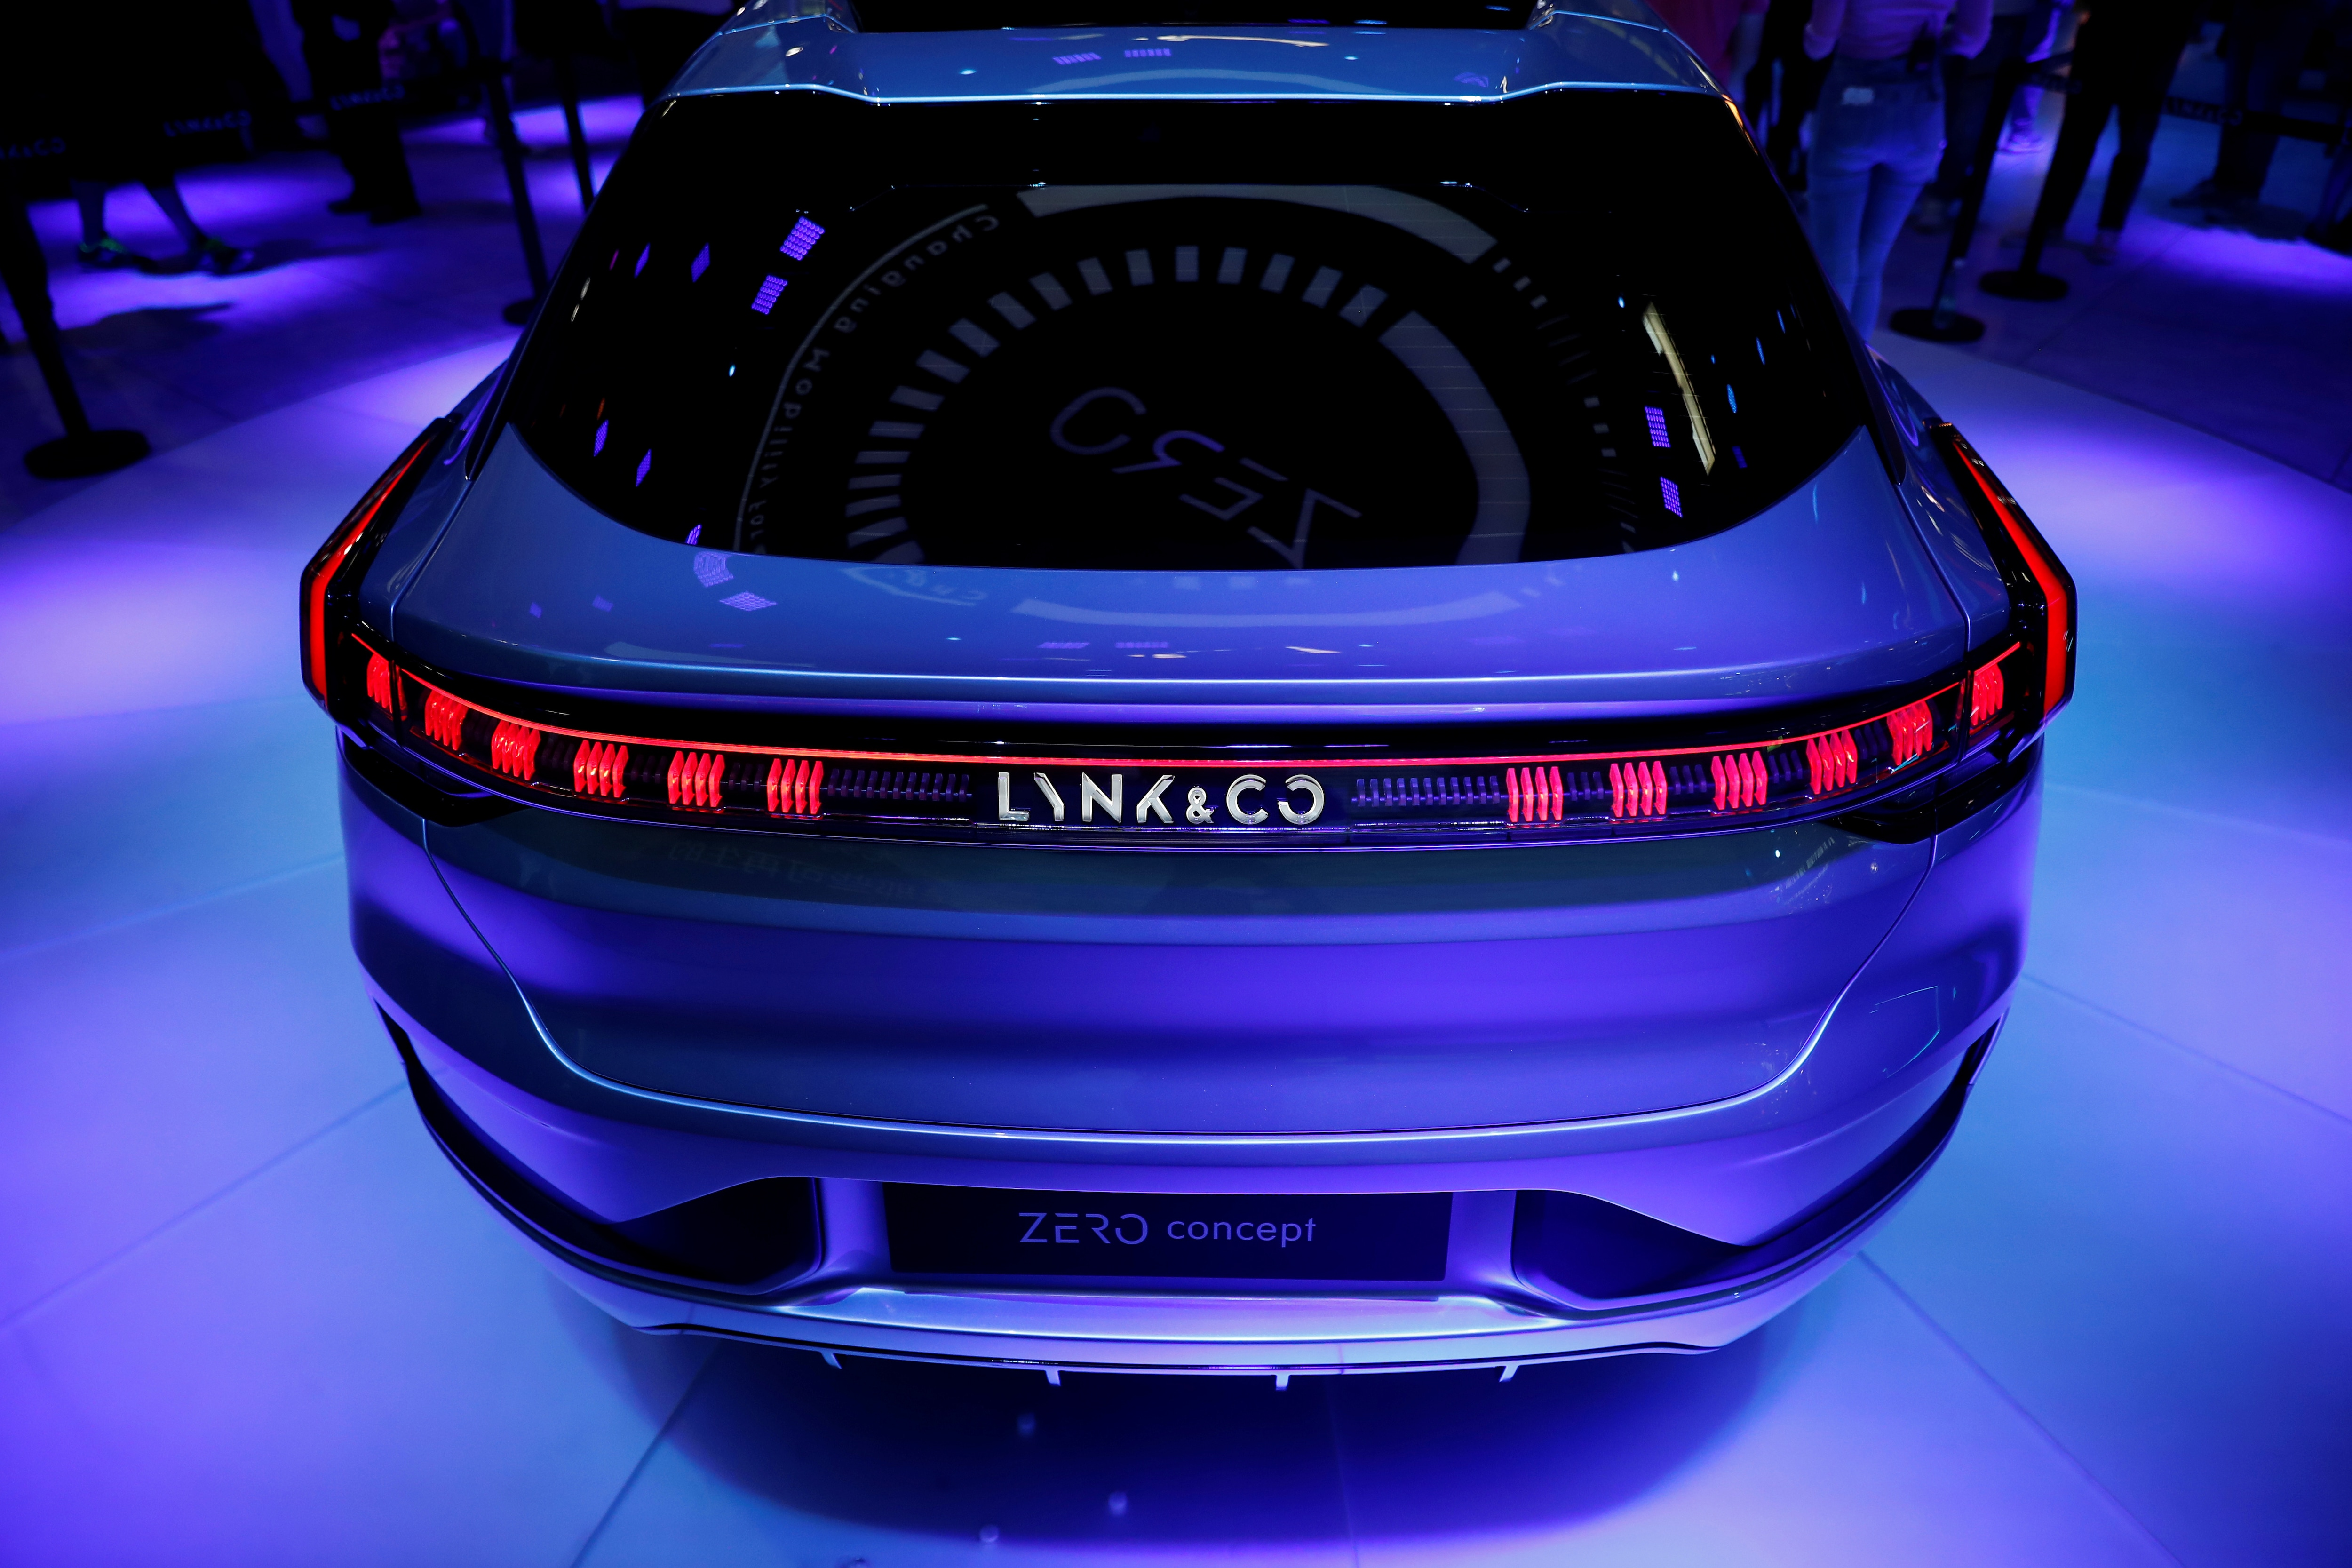 The Lynk & Co Zero Concept car is seen at the exhibition. (REUTERS)